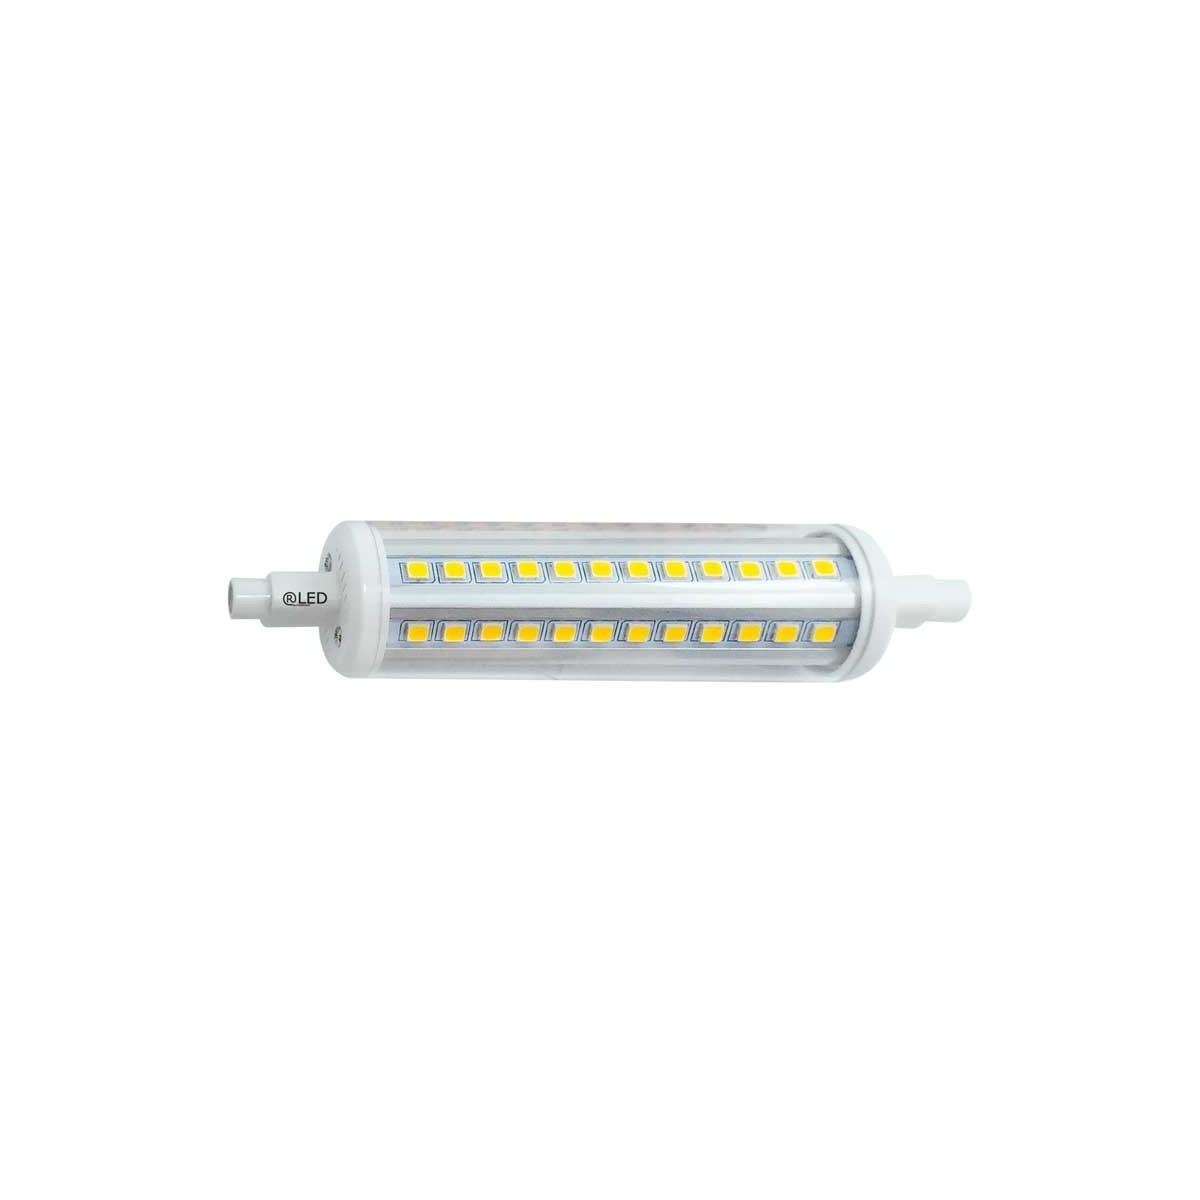 R7s LED SMD 9W 950LM 3000ºK